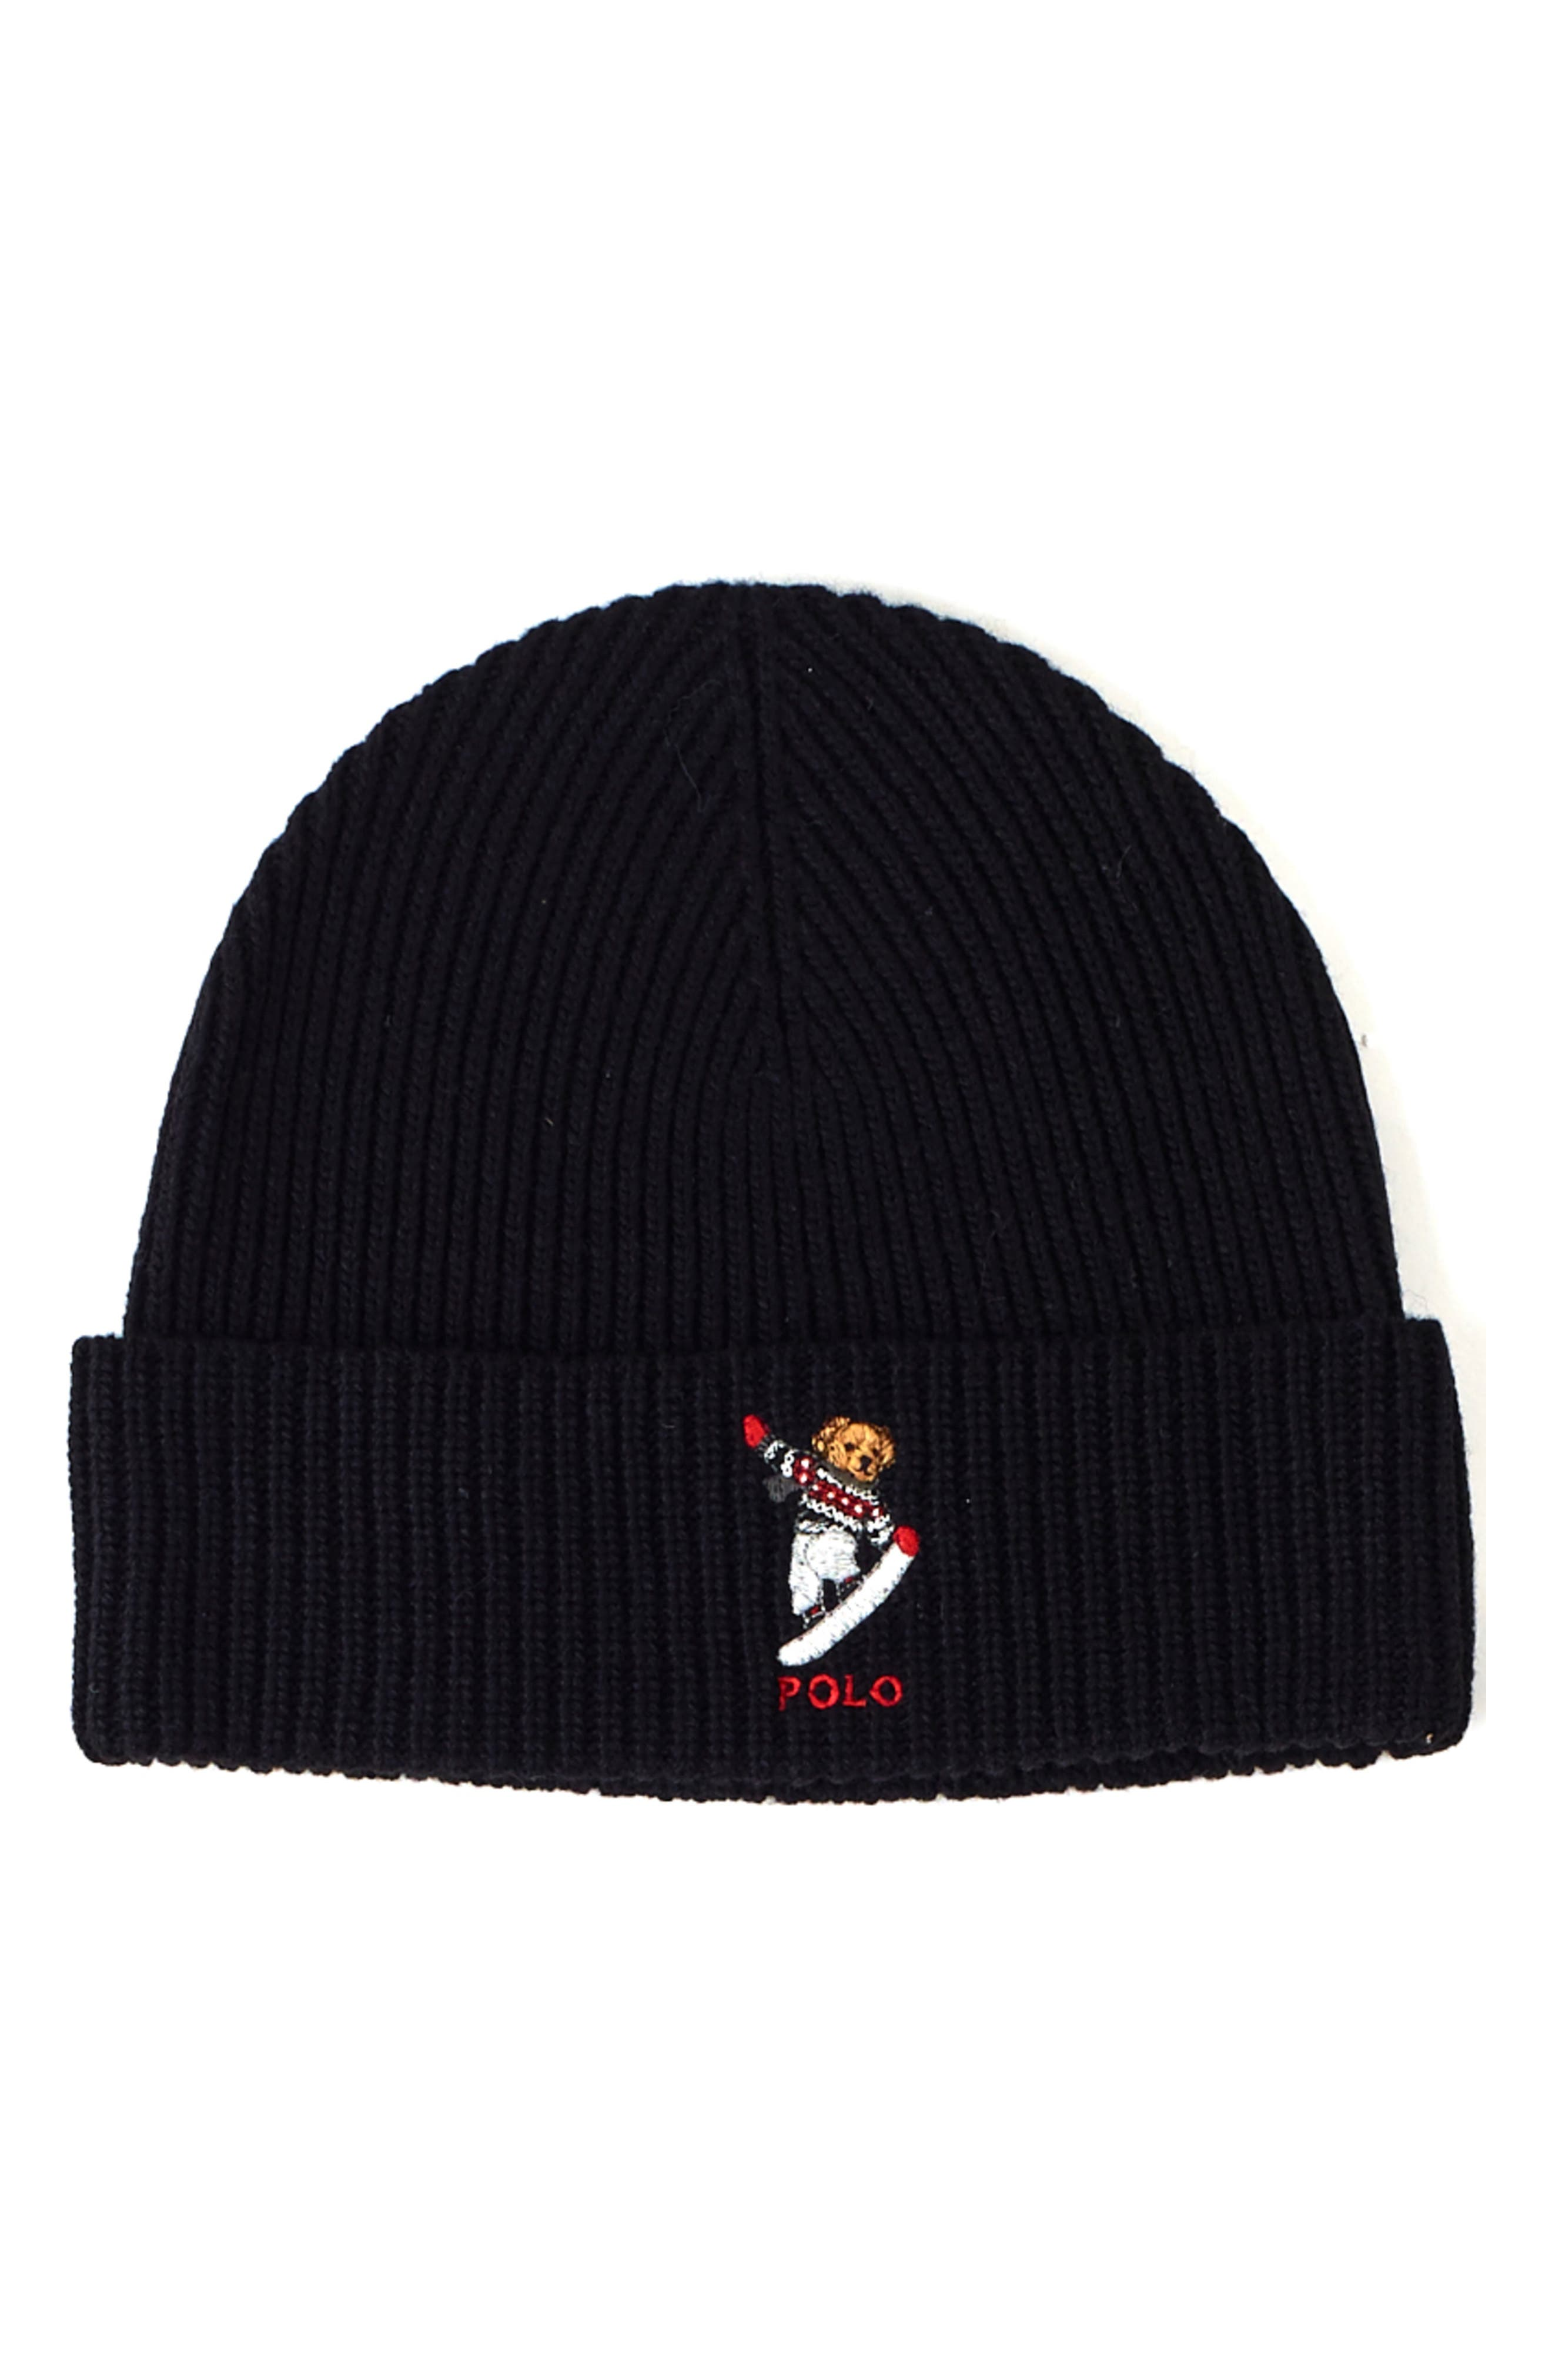 Polo Ralph Lauren Snow Bear Knit Beanie - Black  034dbc103b9